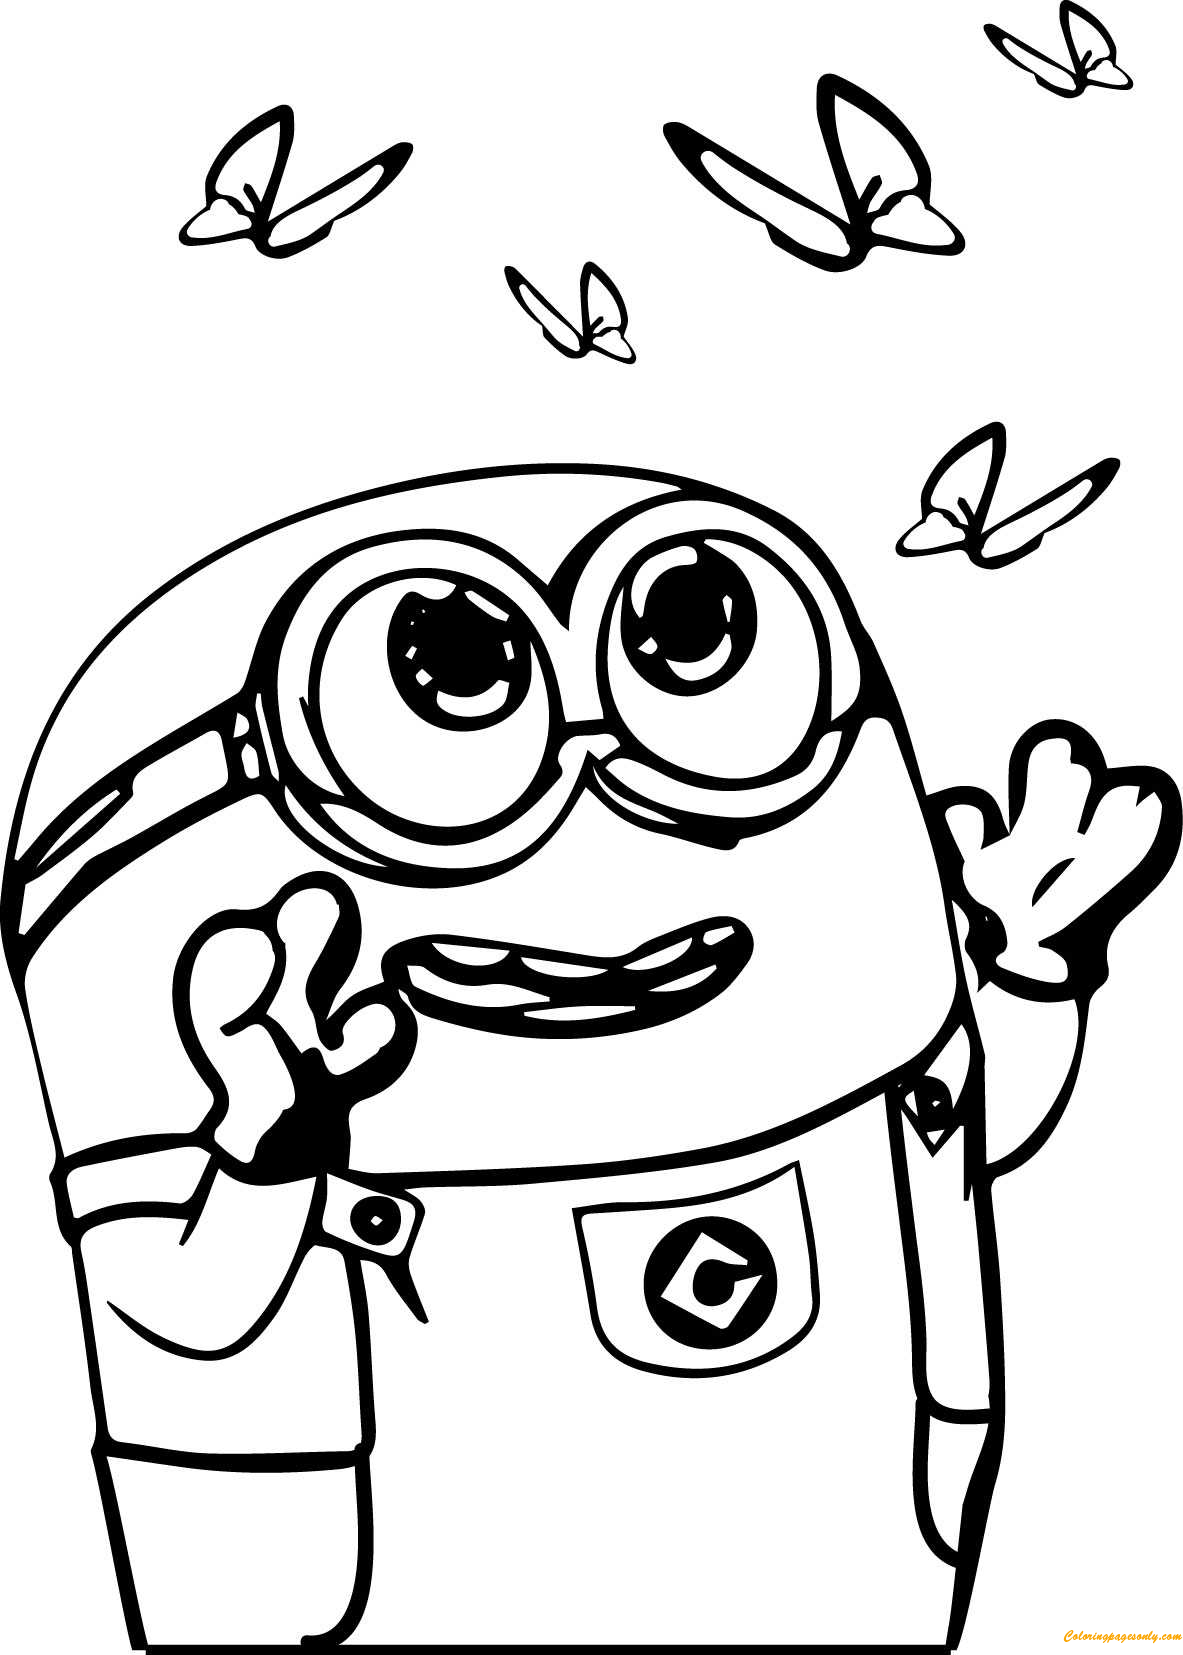 Got Milk Minion Coloring Page  Free Coloring Pages Online